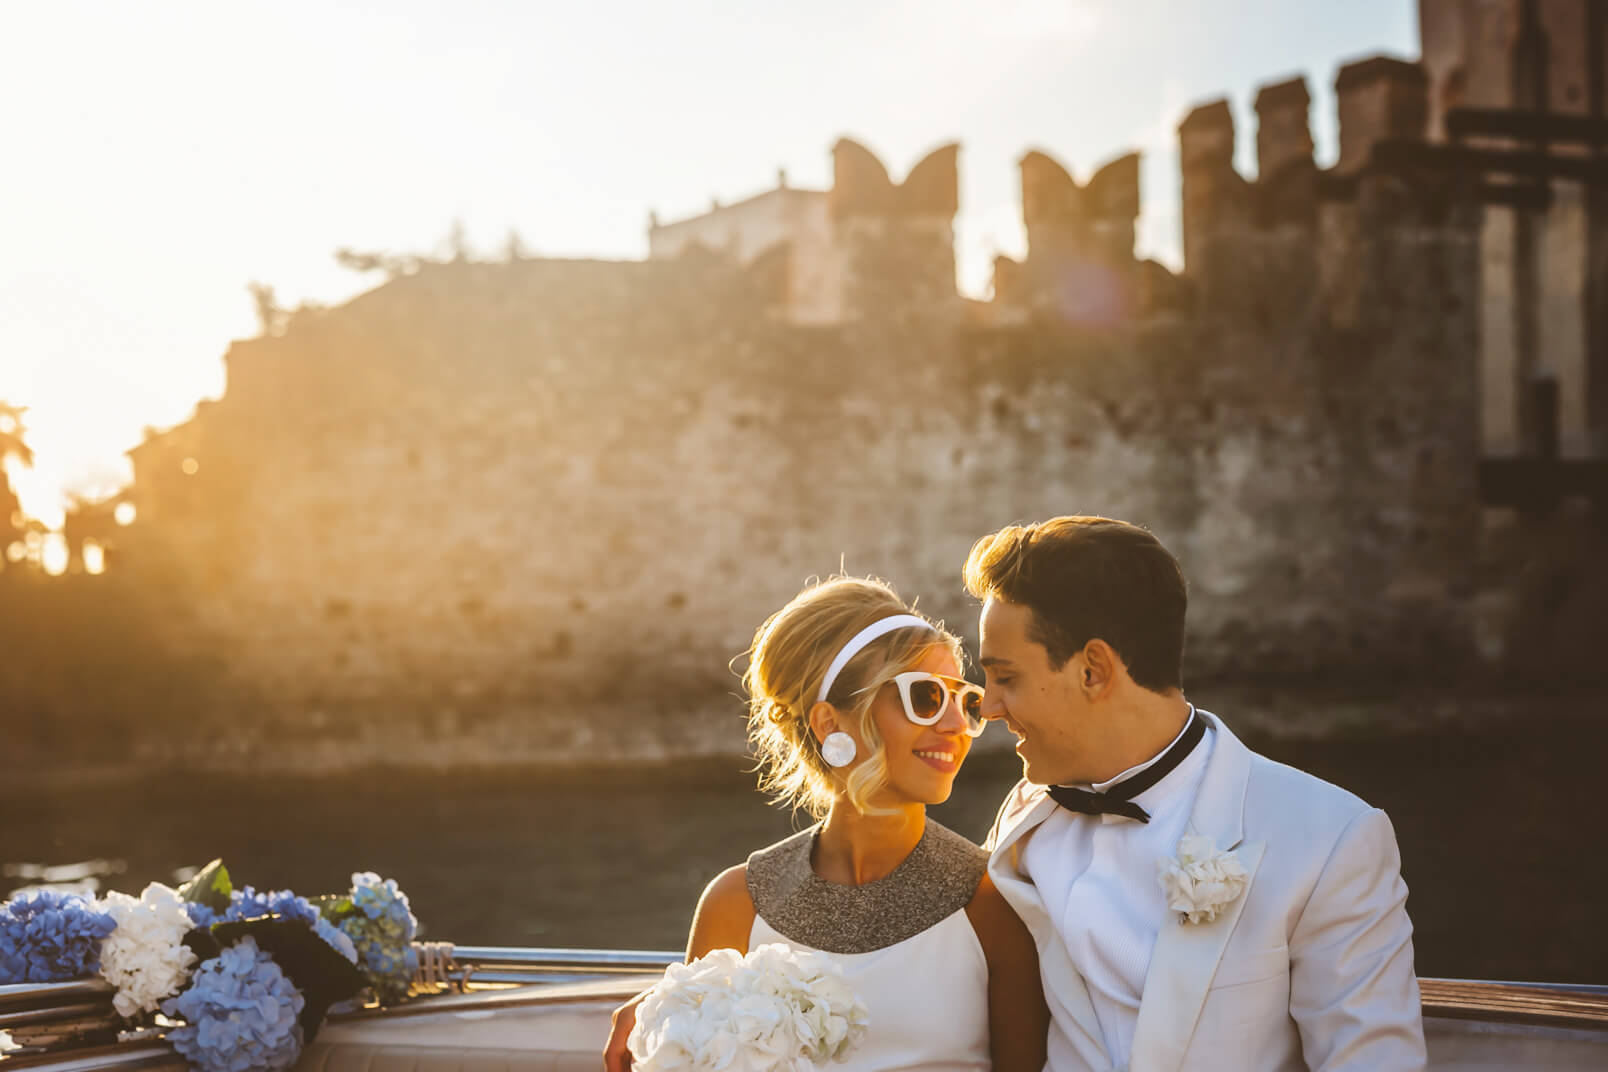 The bride and groom gazing. Amazing backlight at the sunset. 1960s mood glasses.